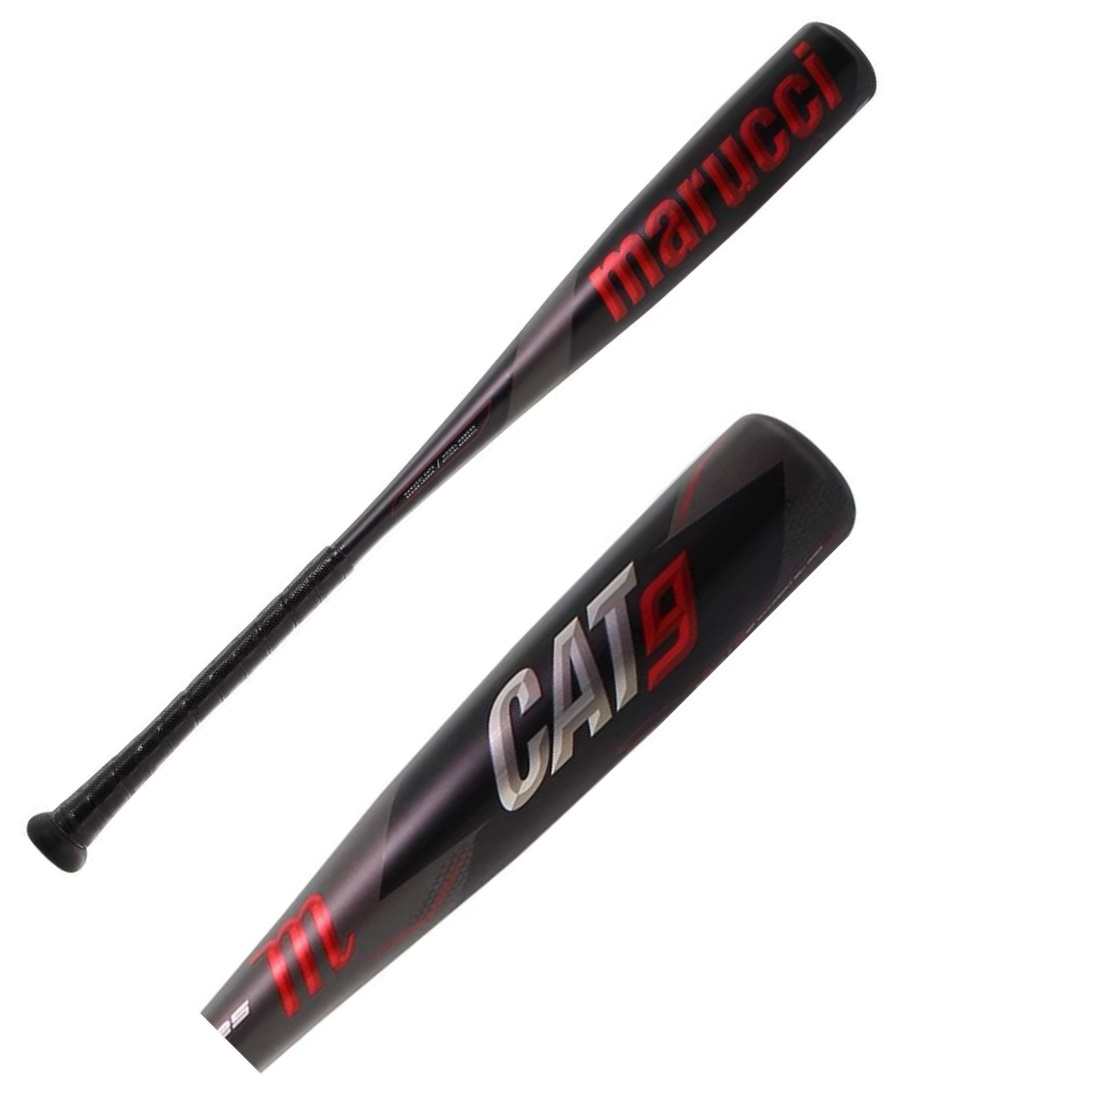 marucci-cat-9-8-usssa-baseball-bat-30-in-22-oz MSBC98-3022 Marucci  Utilizing a three-stage thermal treatment process our new AZR alloy offers